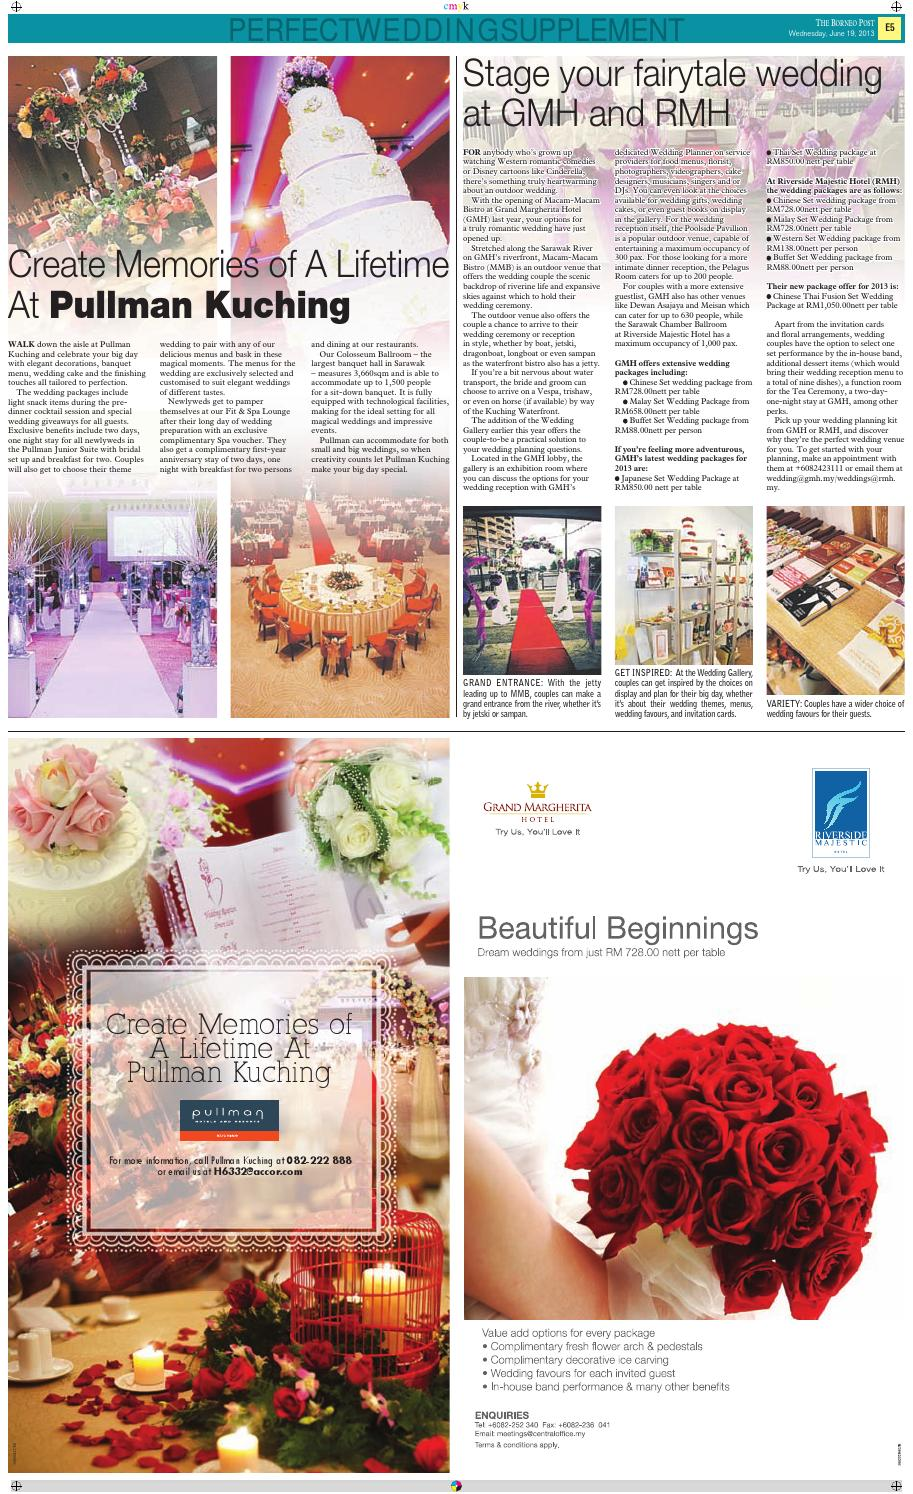 Perfect Wedding Supplement 2013 By Borneo Post Issuu